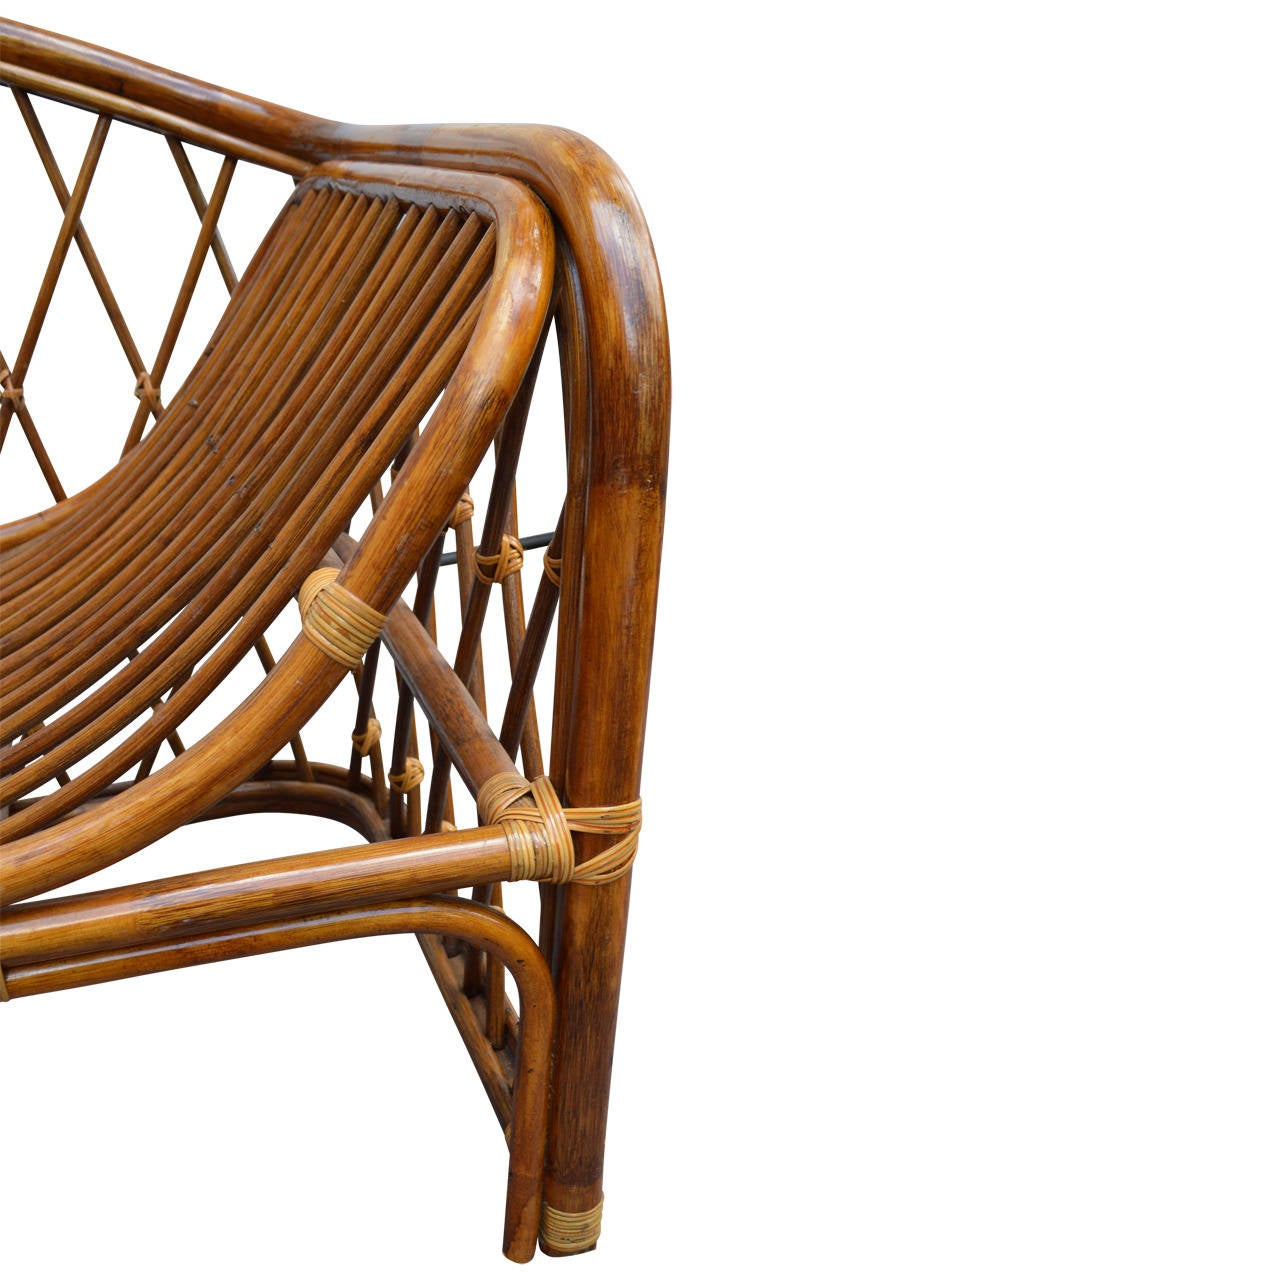 Vintage rattan chaise lounge at 1stdibs for Antique rattan chaise lounge